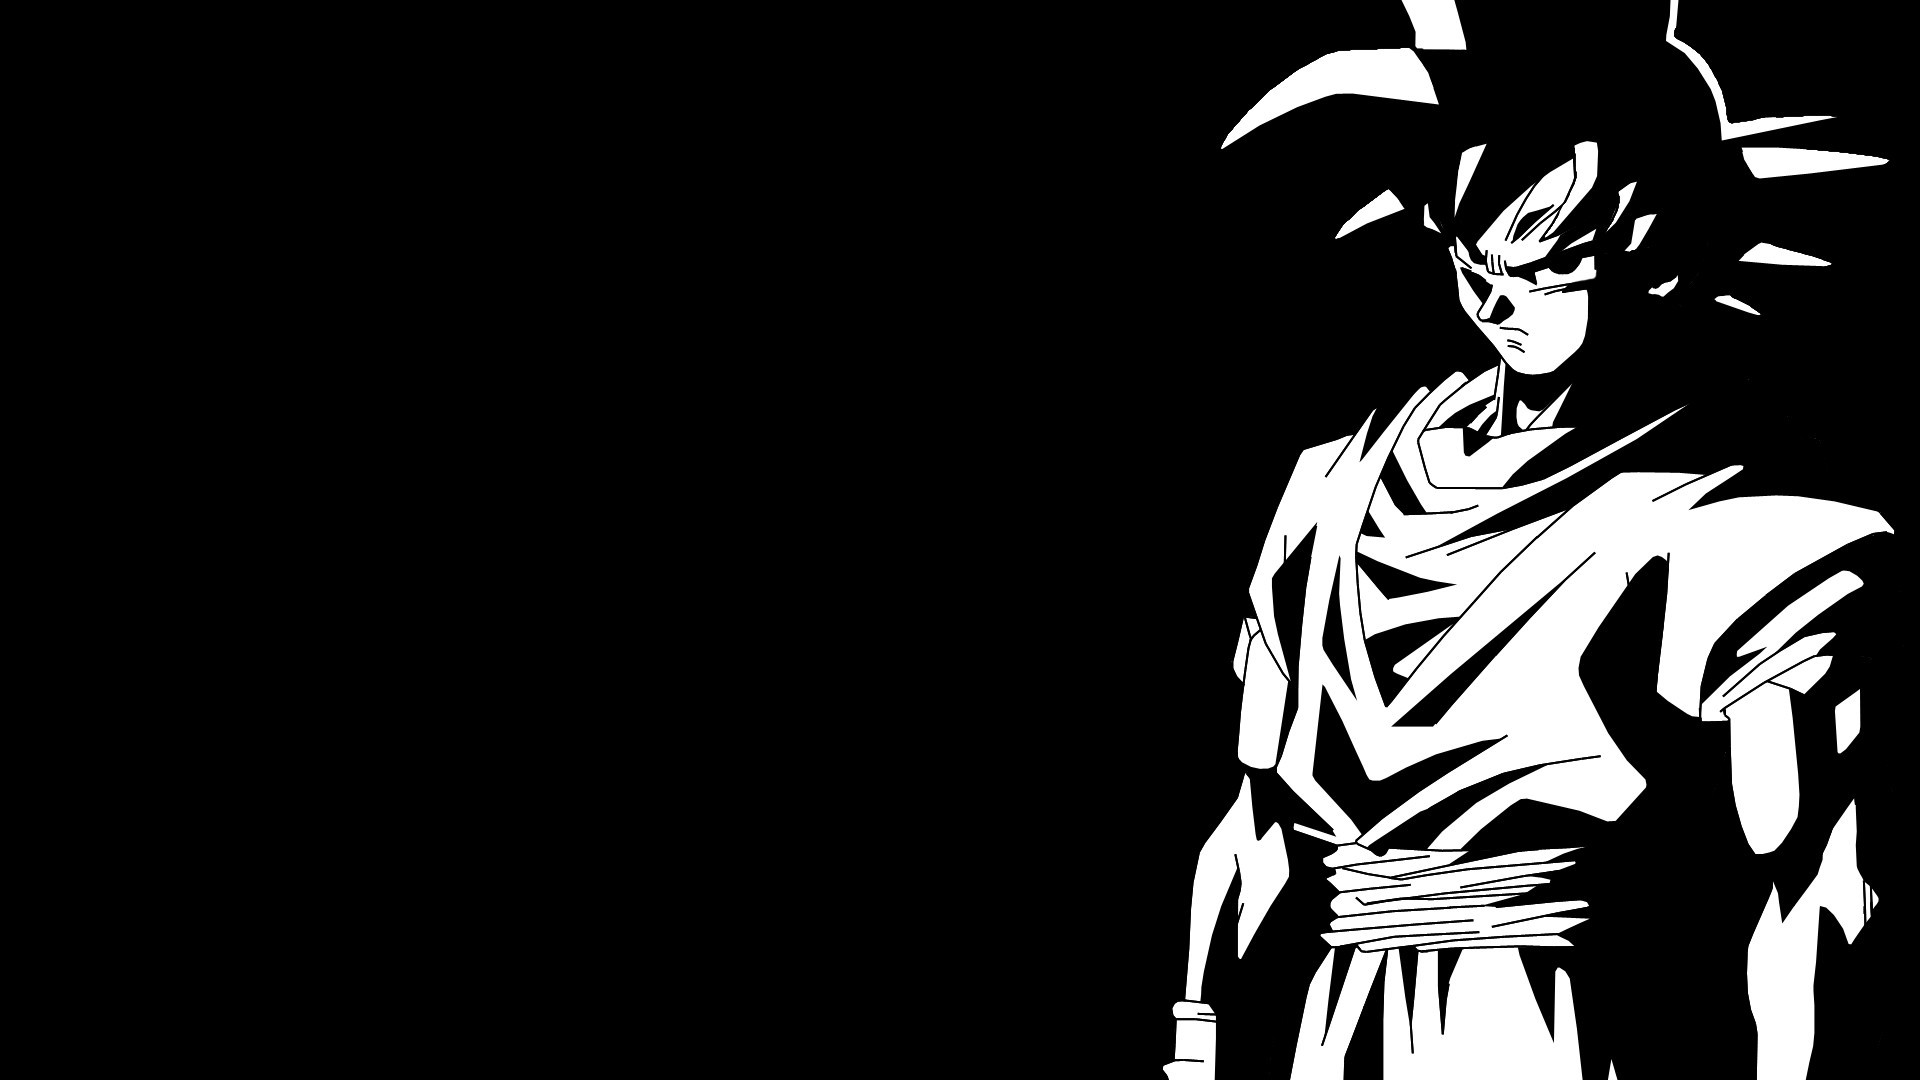 1920x1080 Son Goku Super Saiyan God Wallpaper A Dragon Ball ZHintergrundbilderSuper